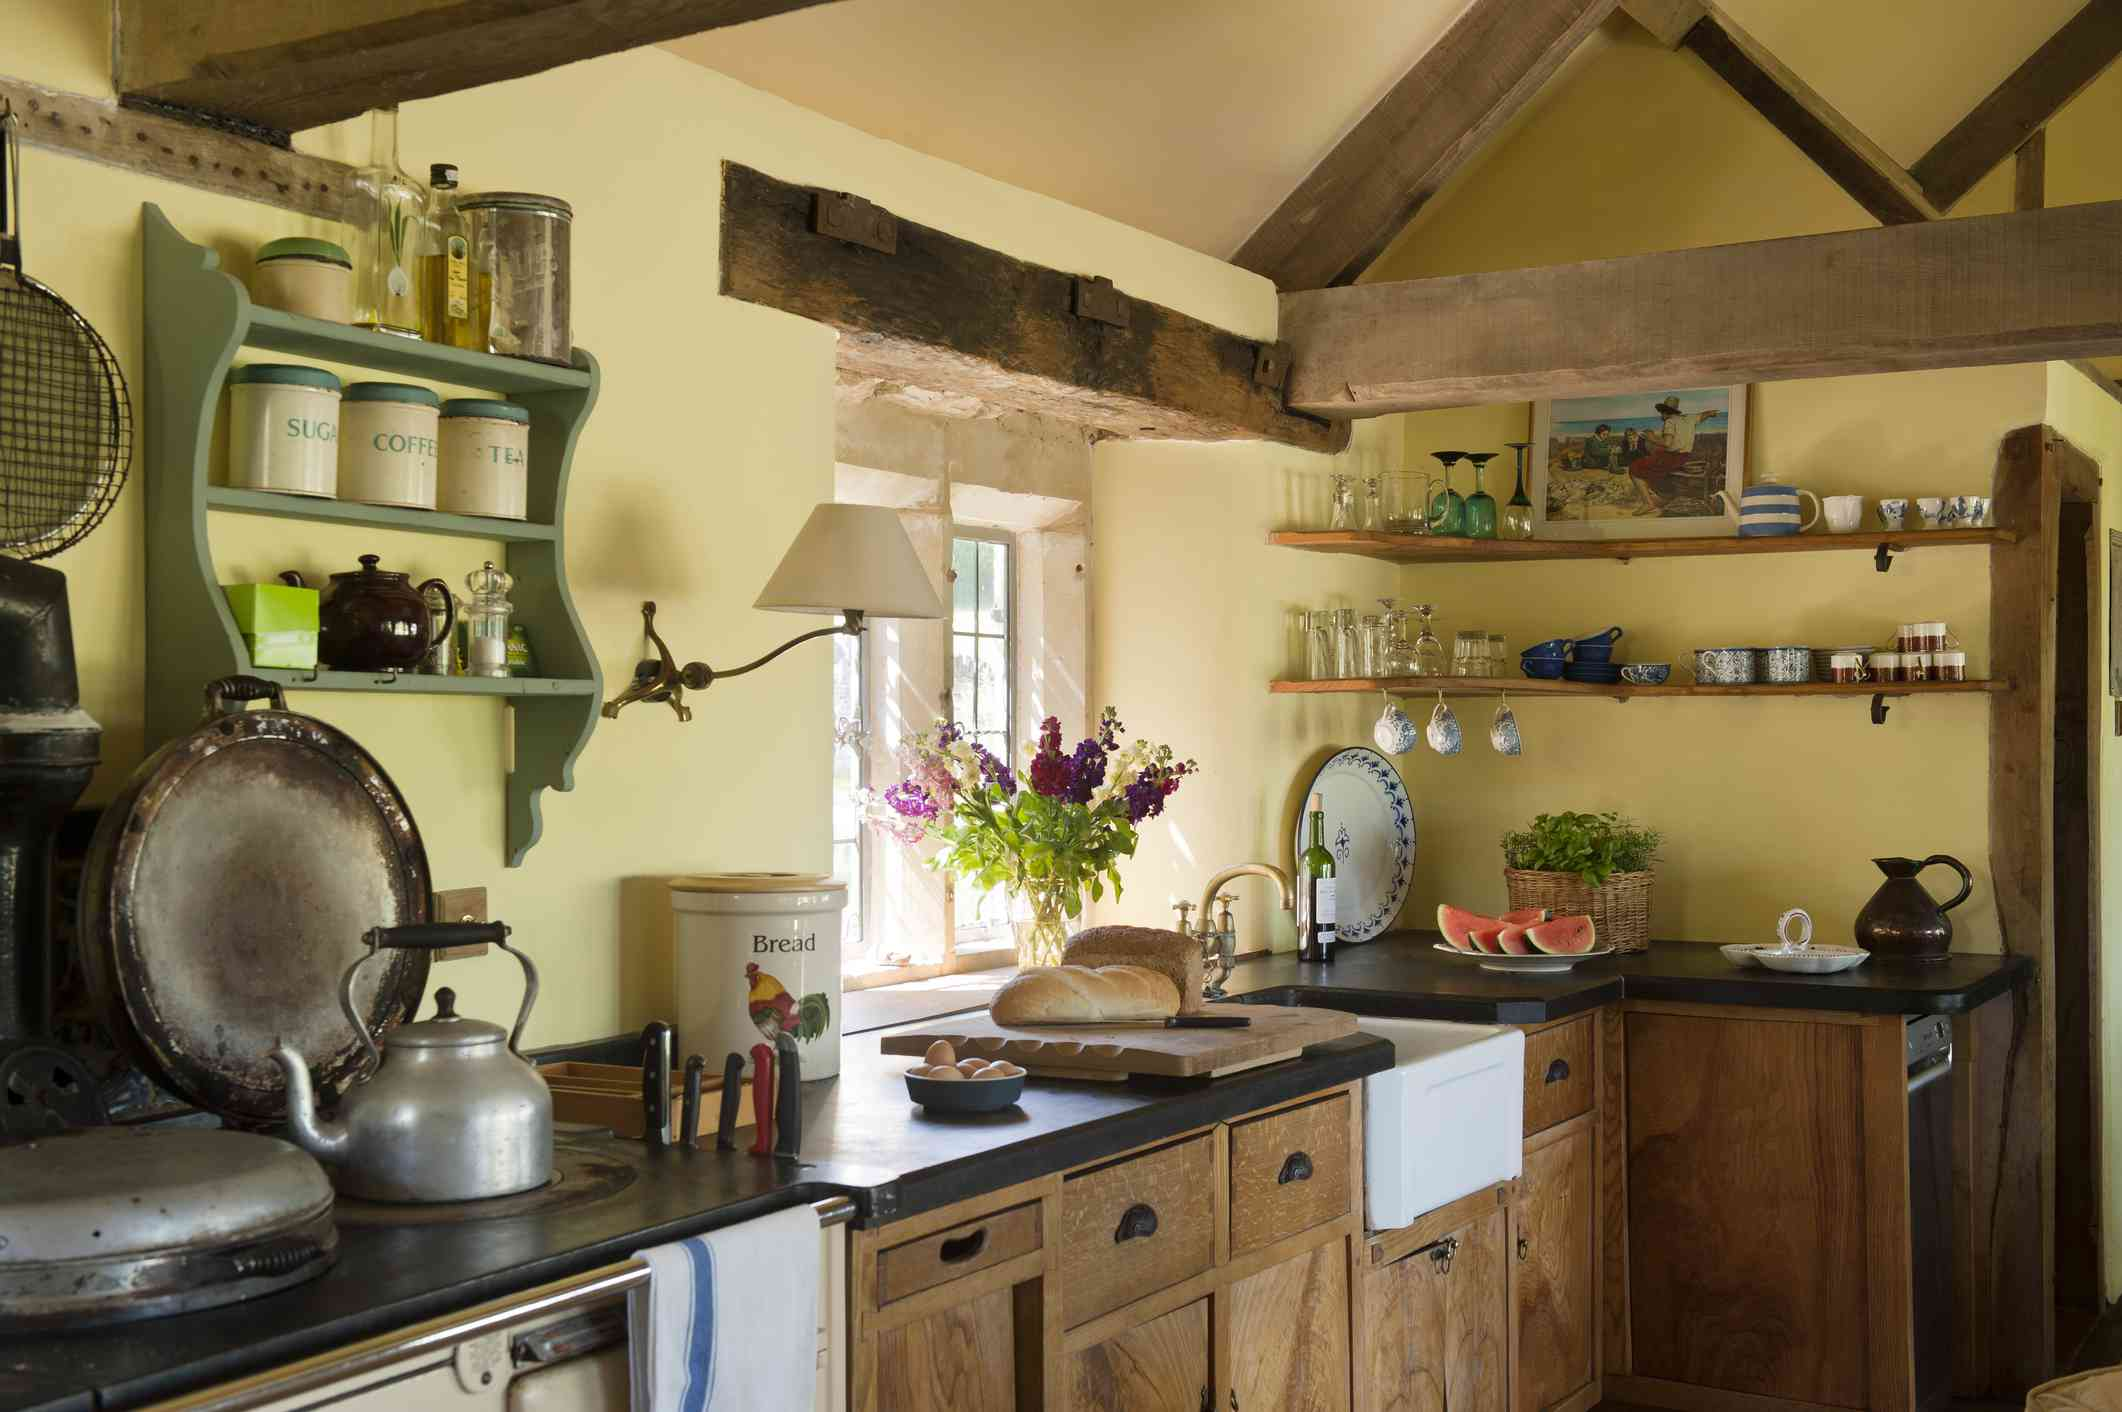 A rustic country kitchen